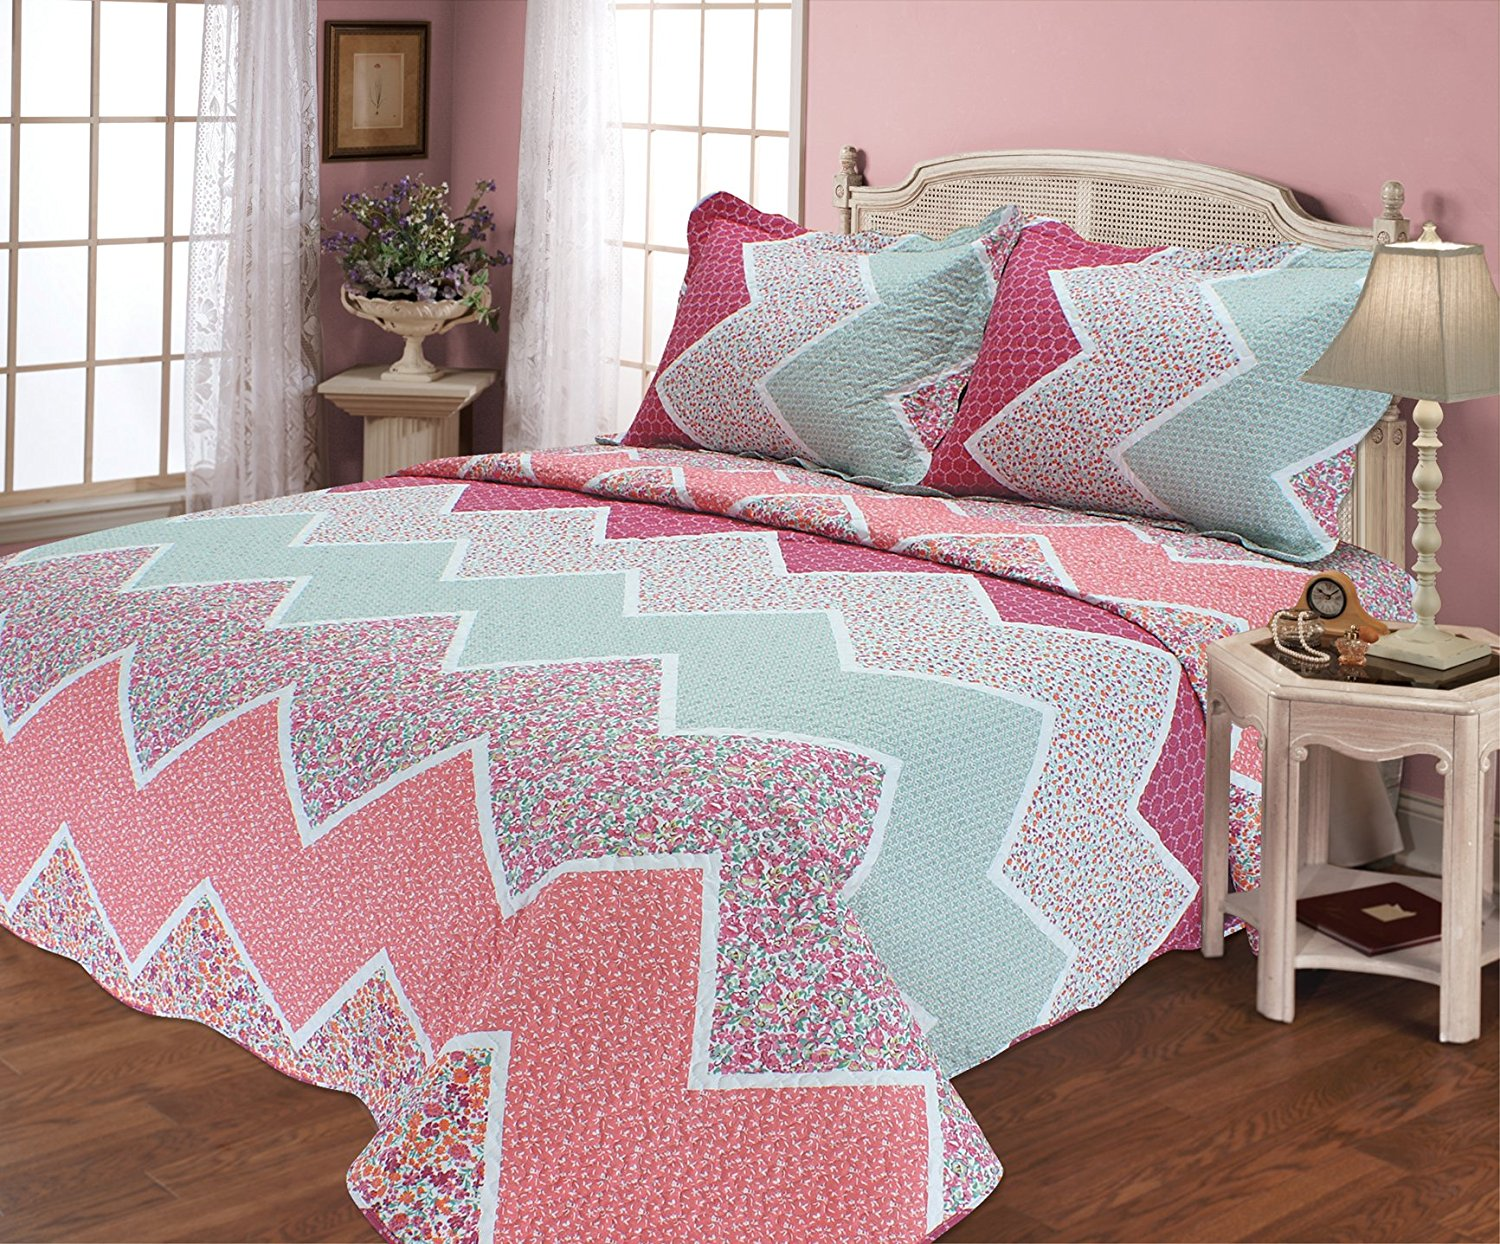 All for You 3pc Reversible Quilt Set, Bedspread, and Coverlet with Flower Prints-4... by All For You Home